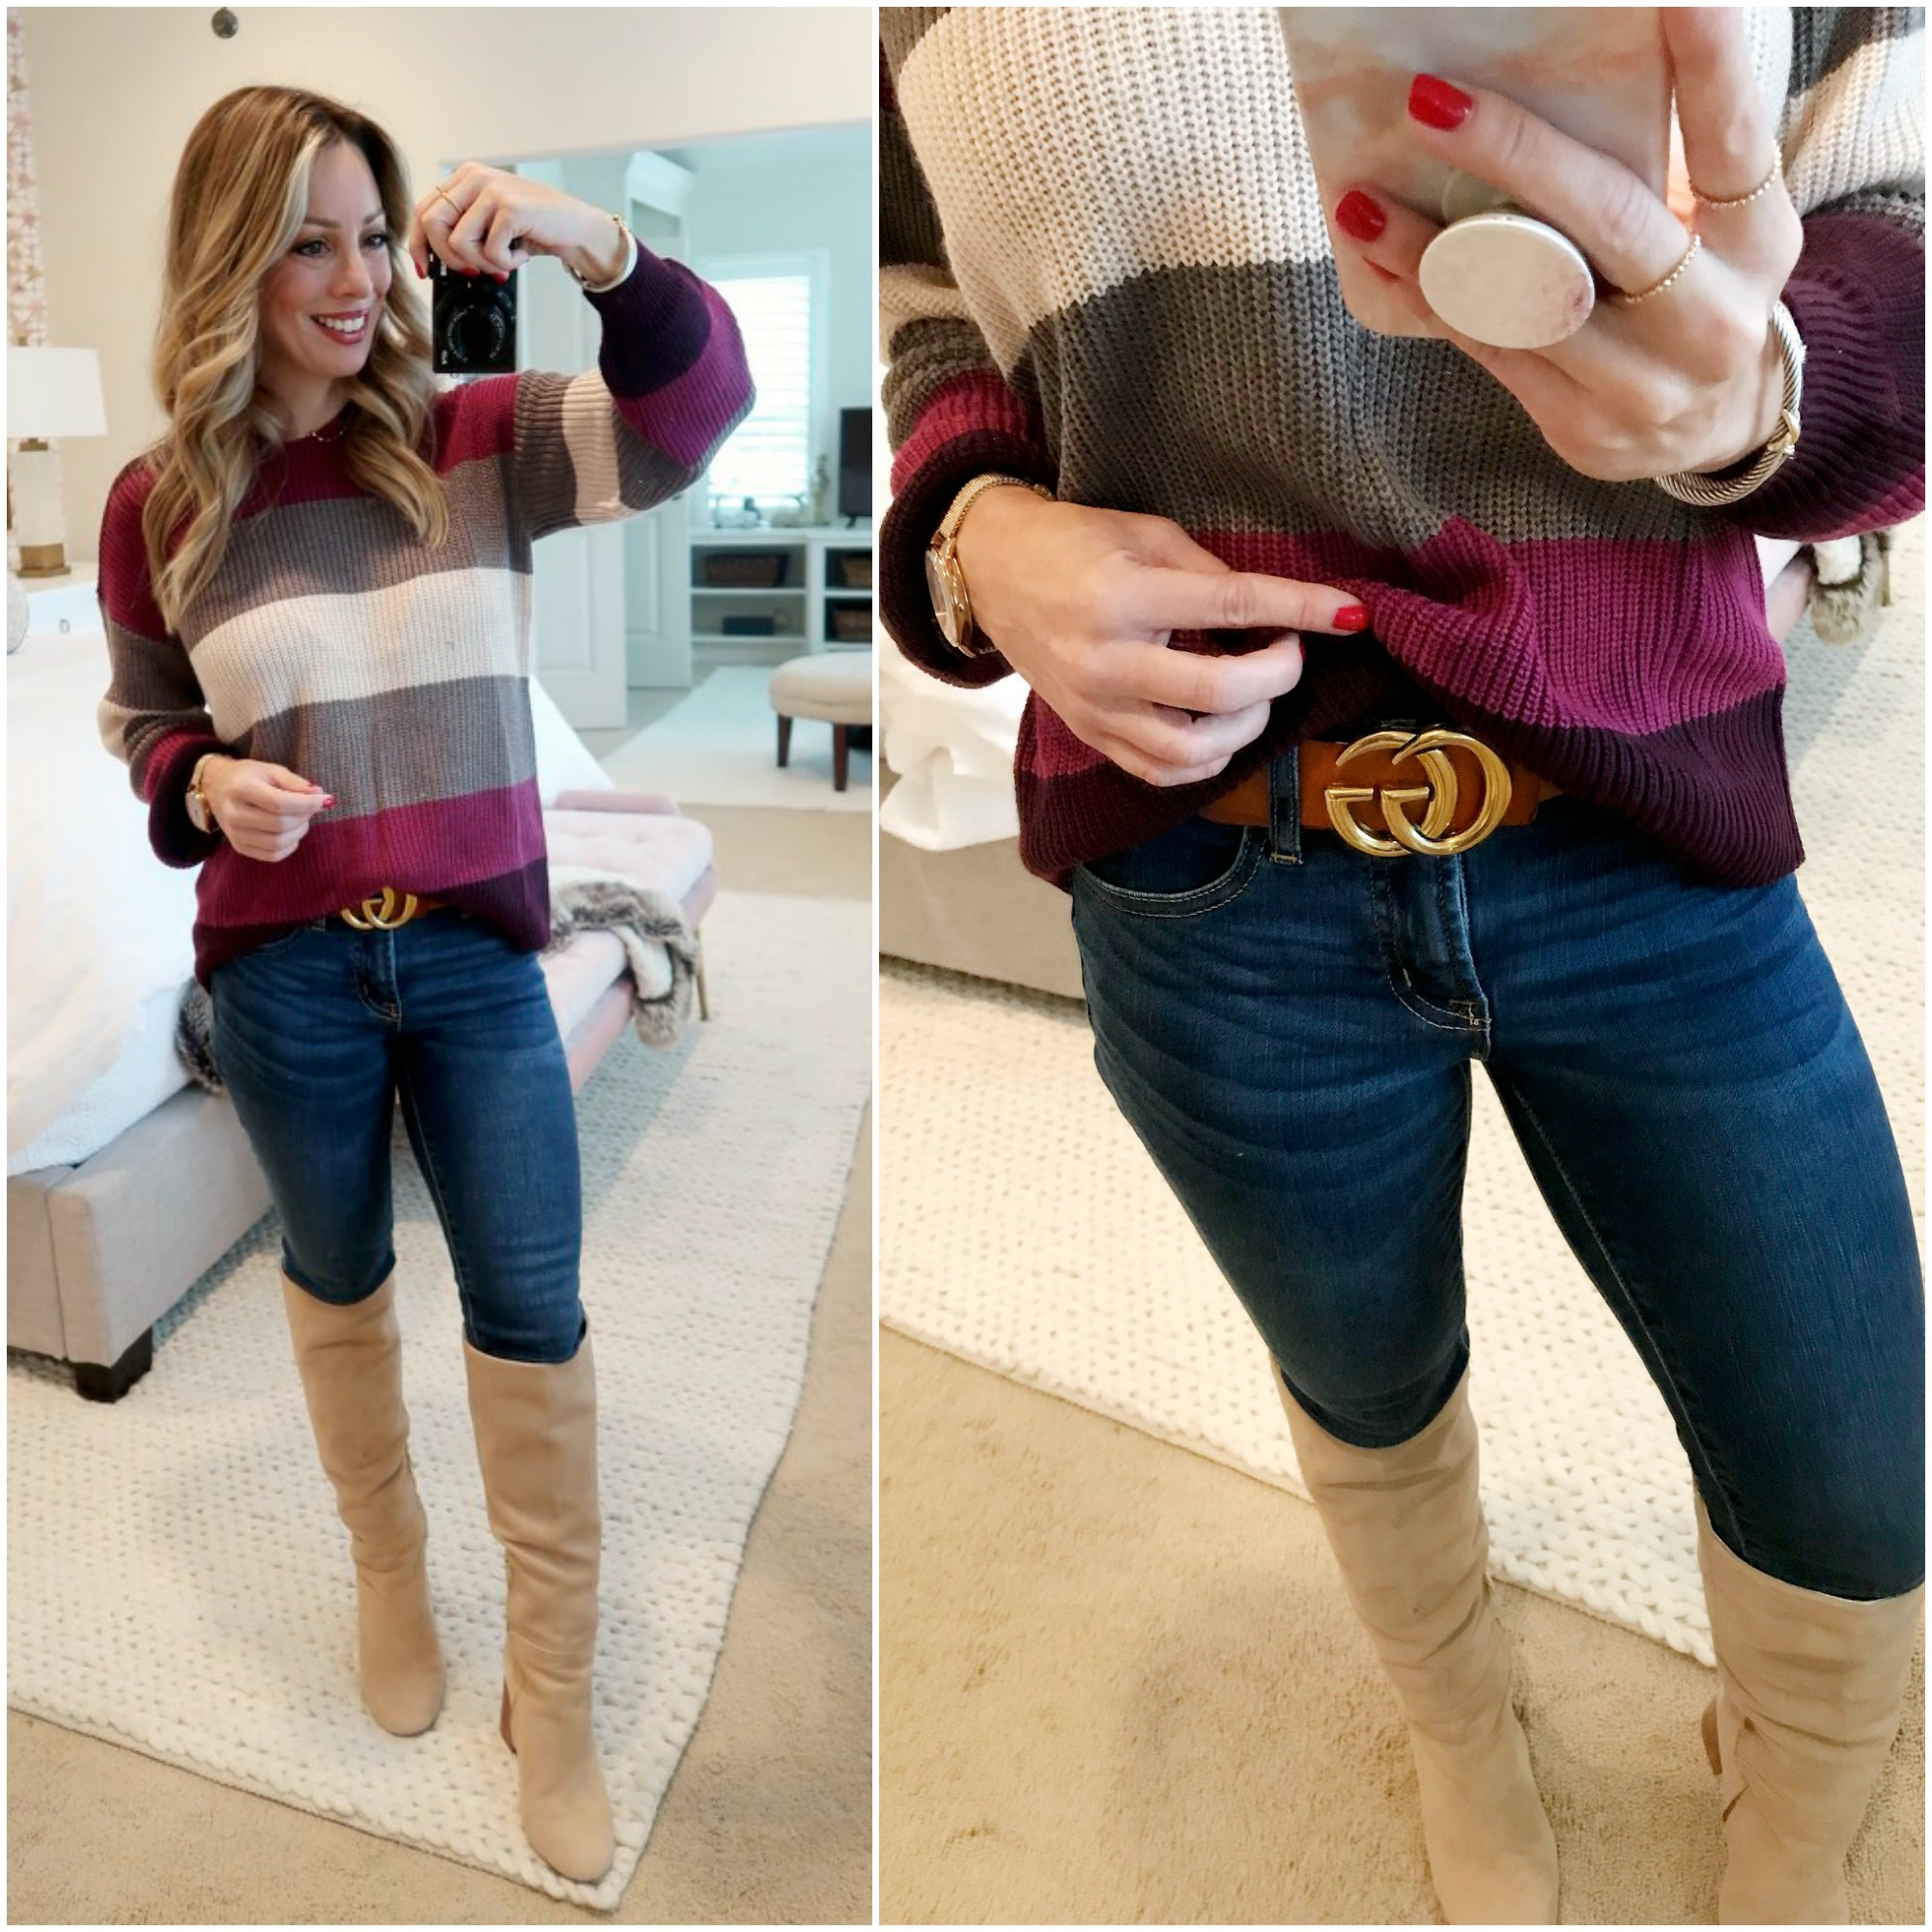 Amazon Fashion Haul CG Belt with sweater and boots